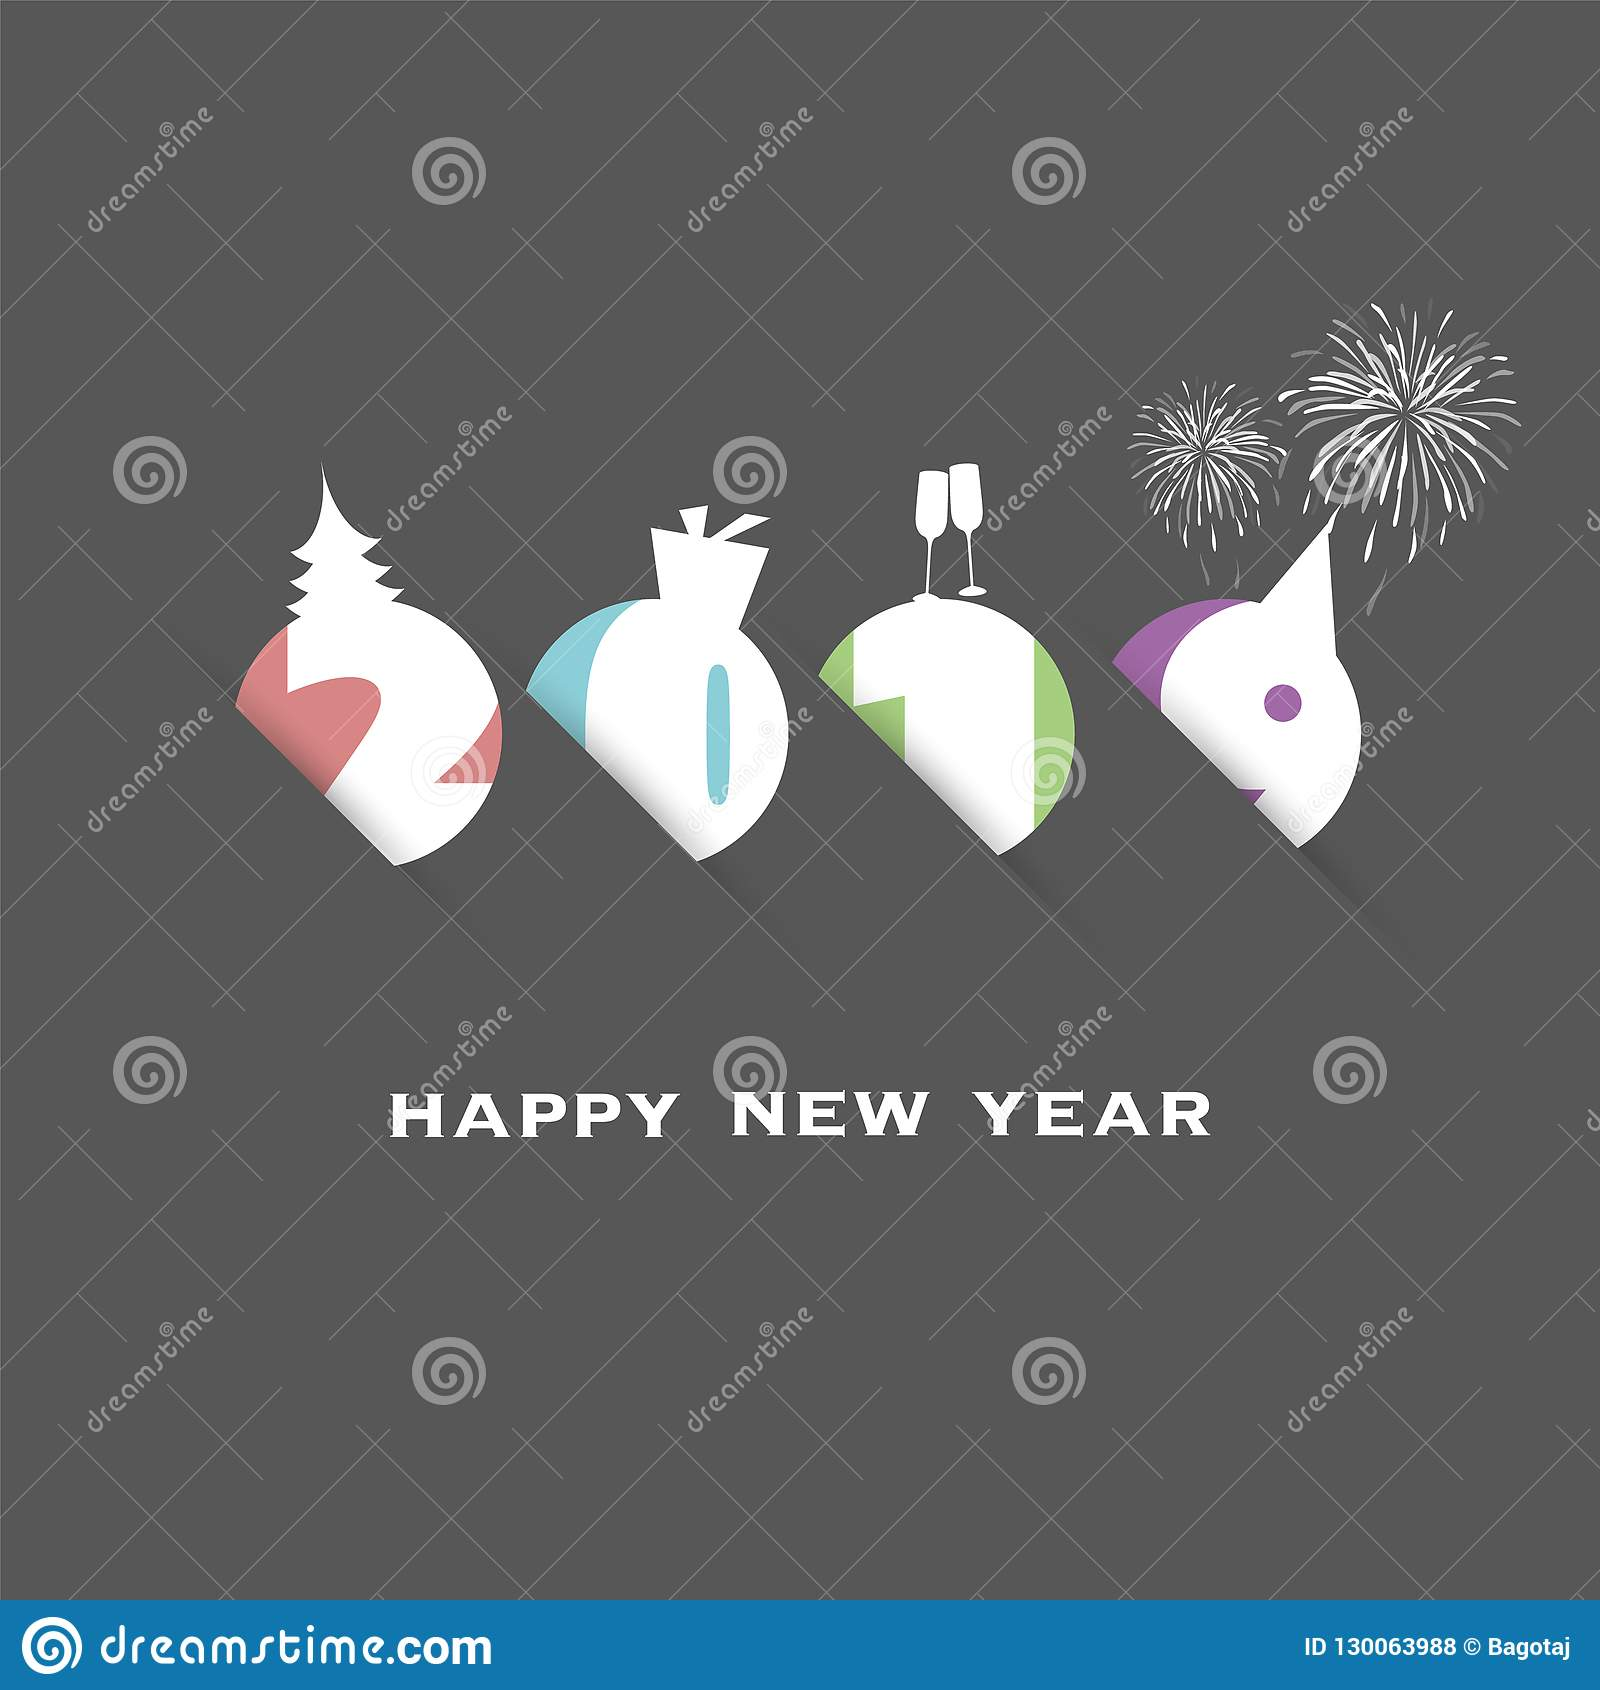 best wishes abstract modern style new year card cover or background design template illustration in freely scalable and editable vector format